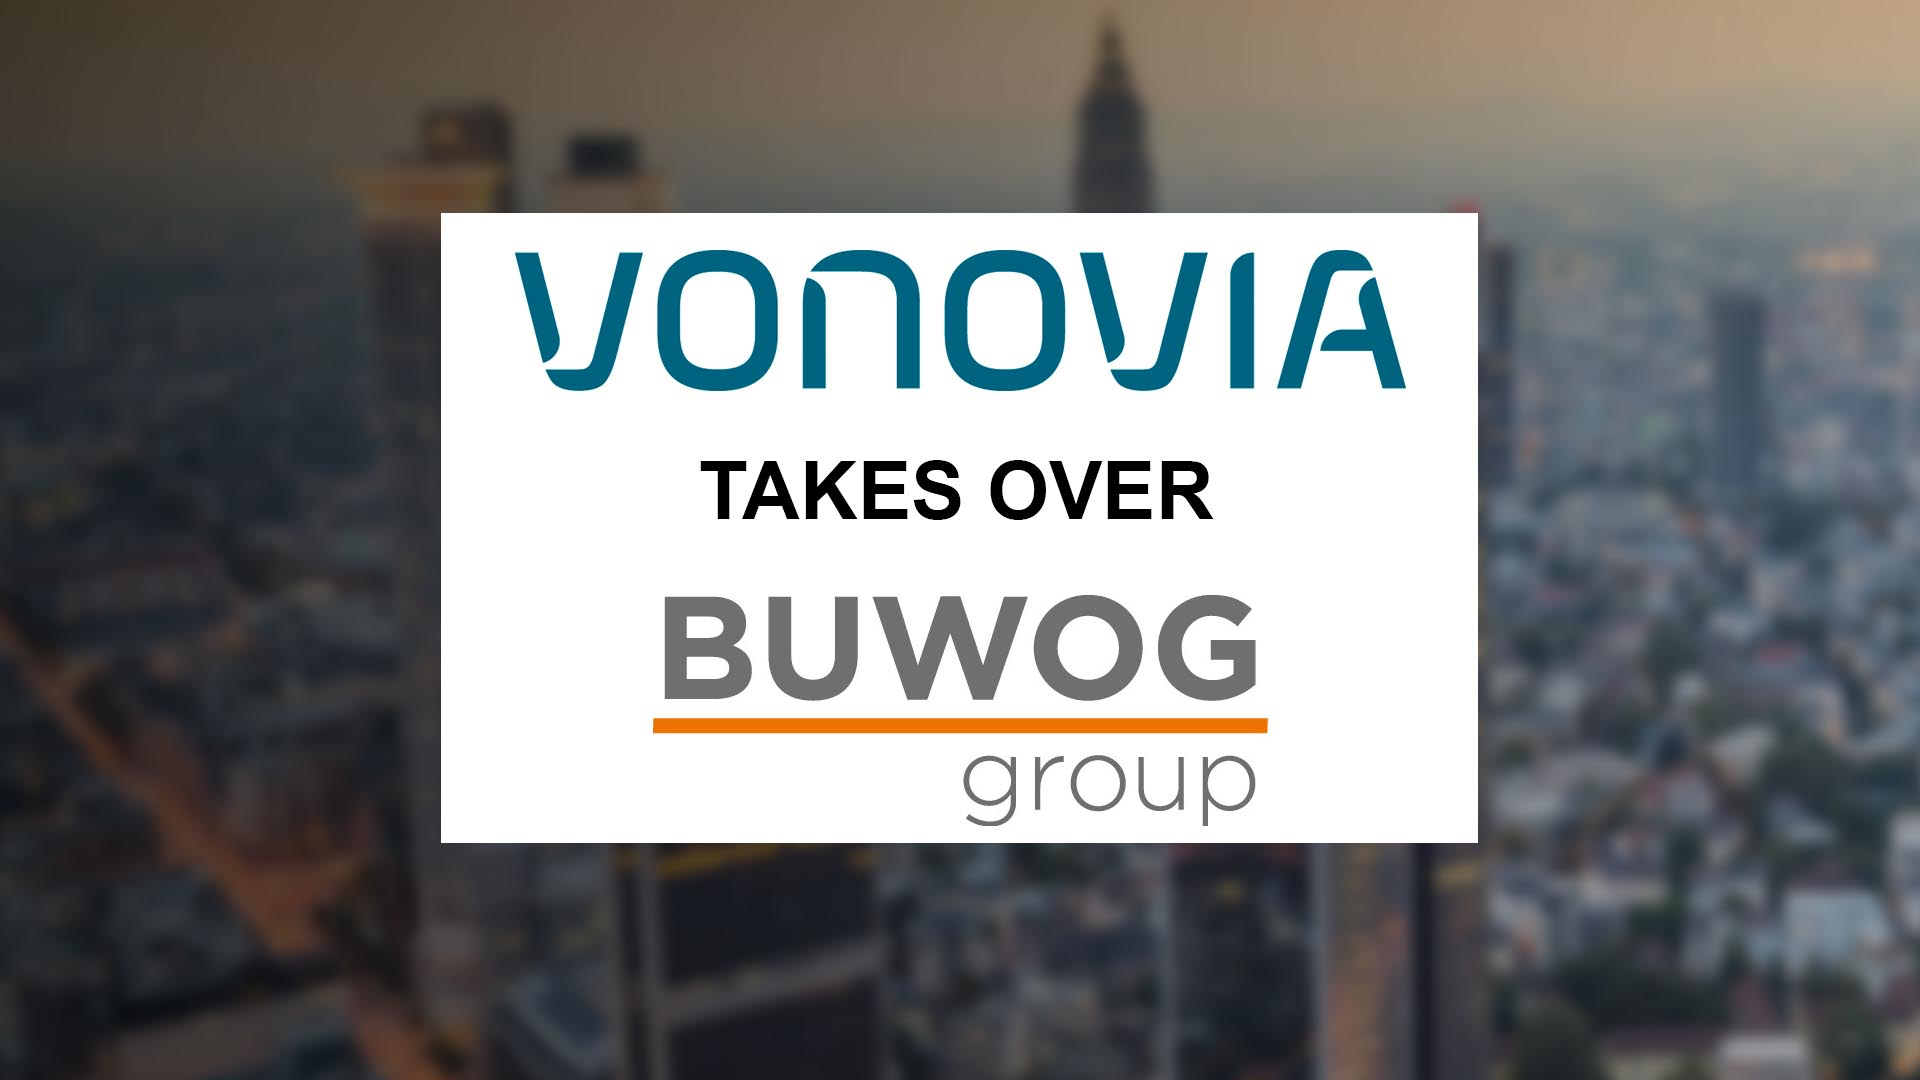 Vonovia Takes Over Buwog Group